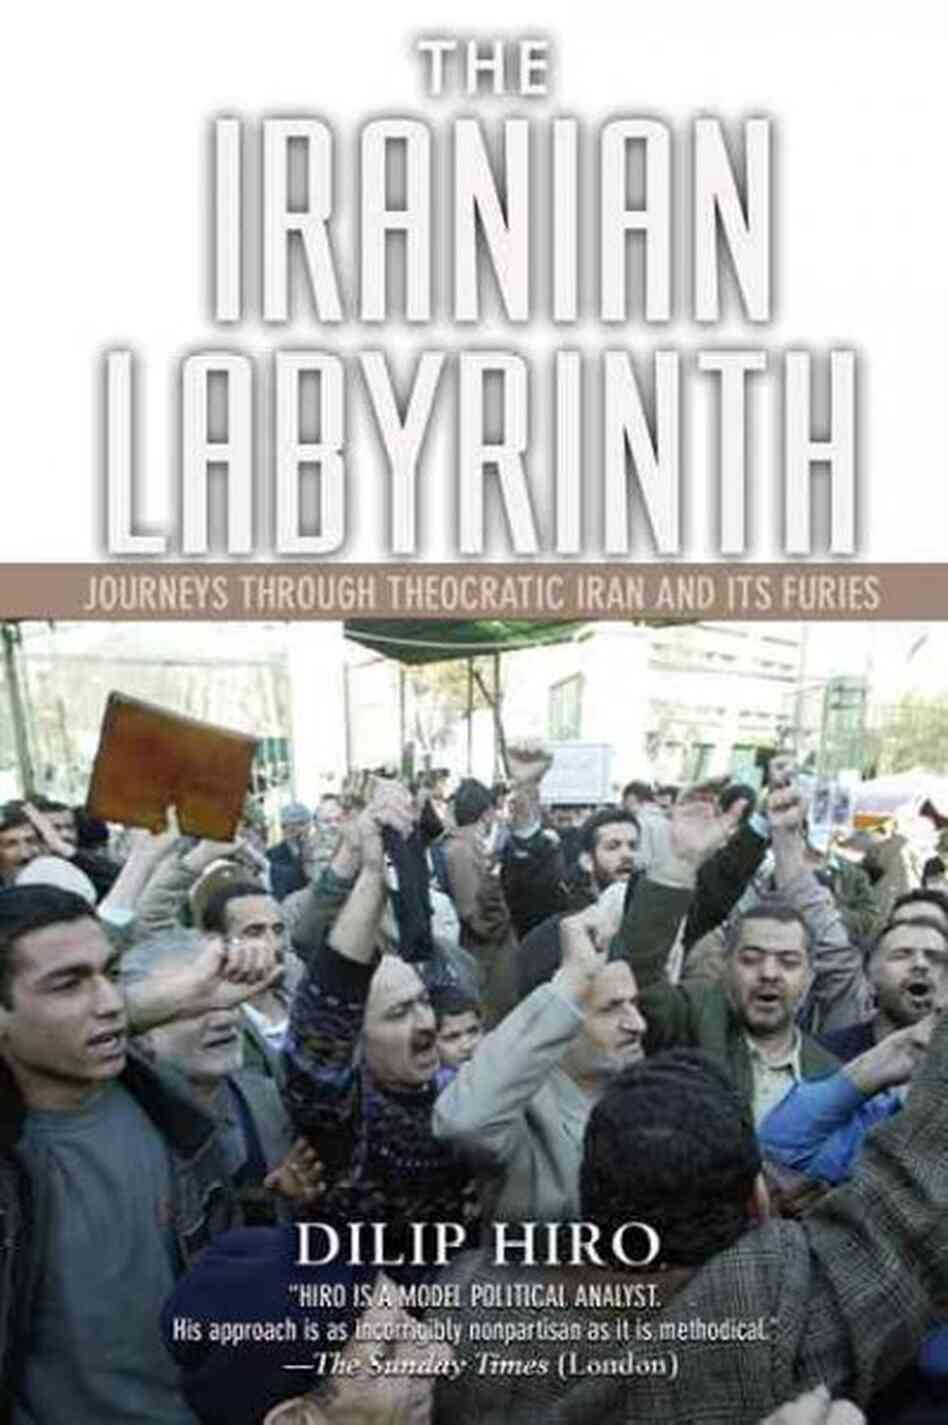 The Iranian Labyrinth